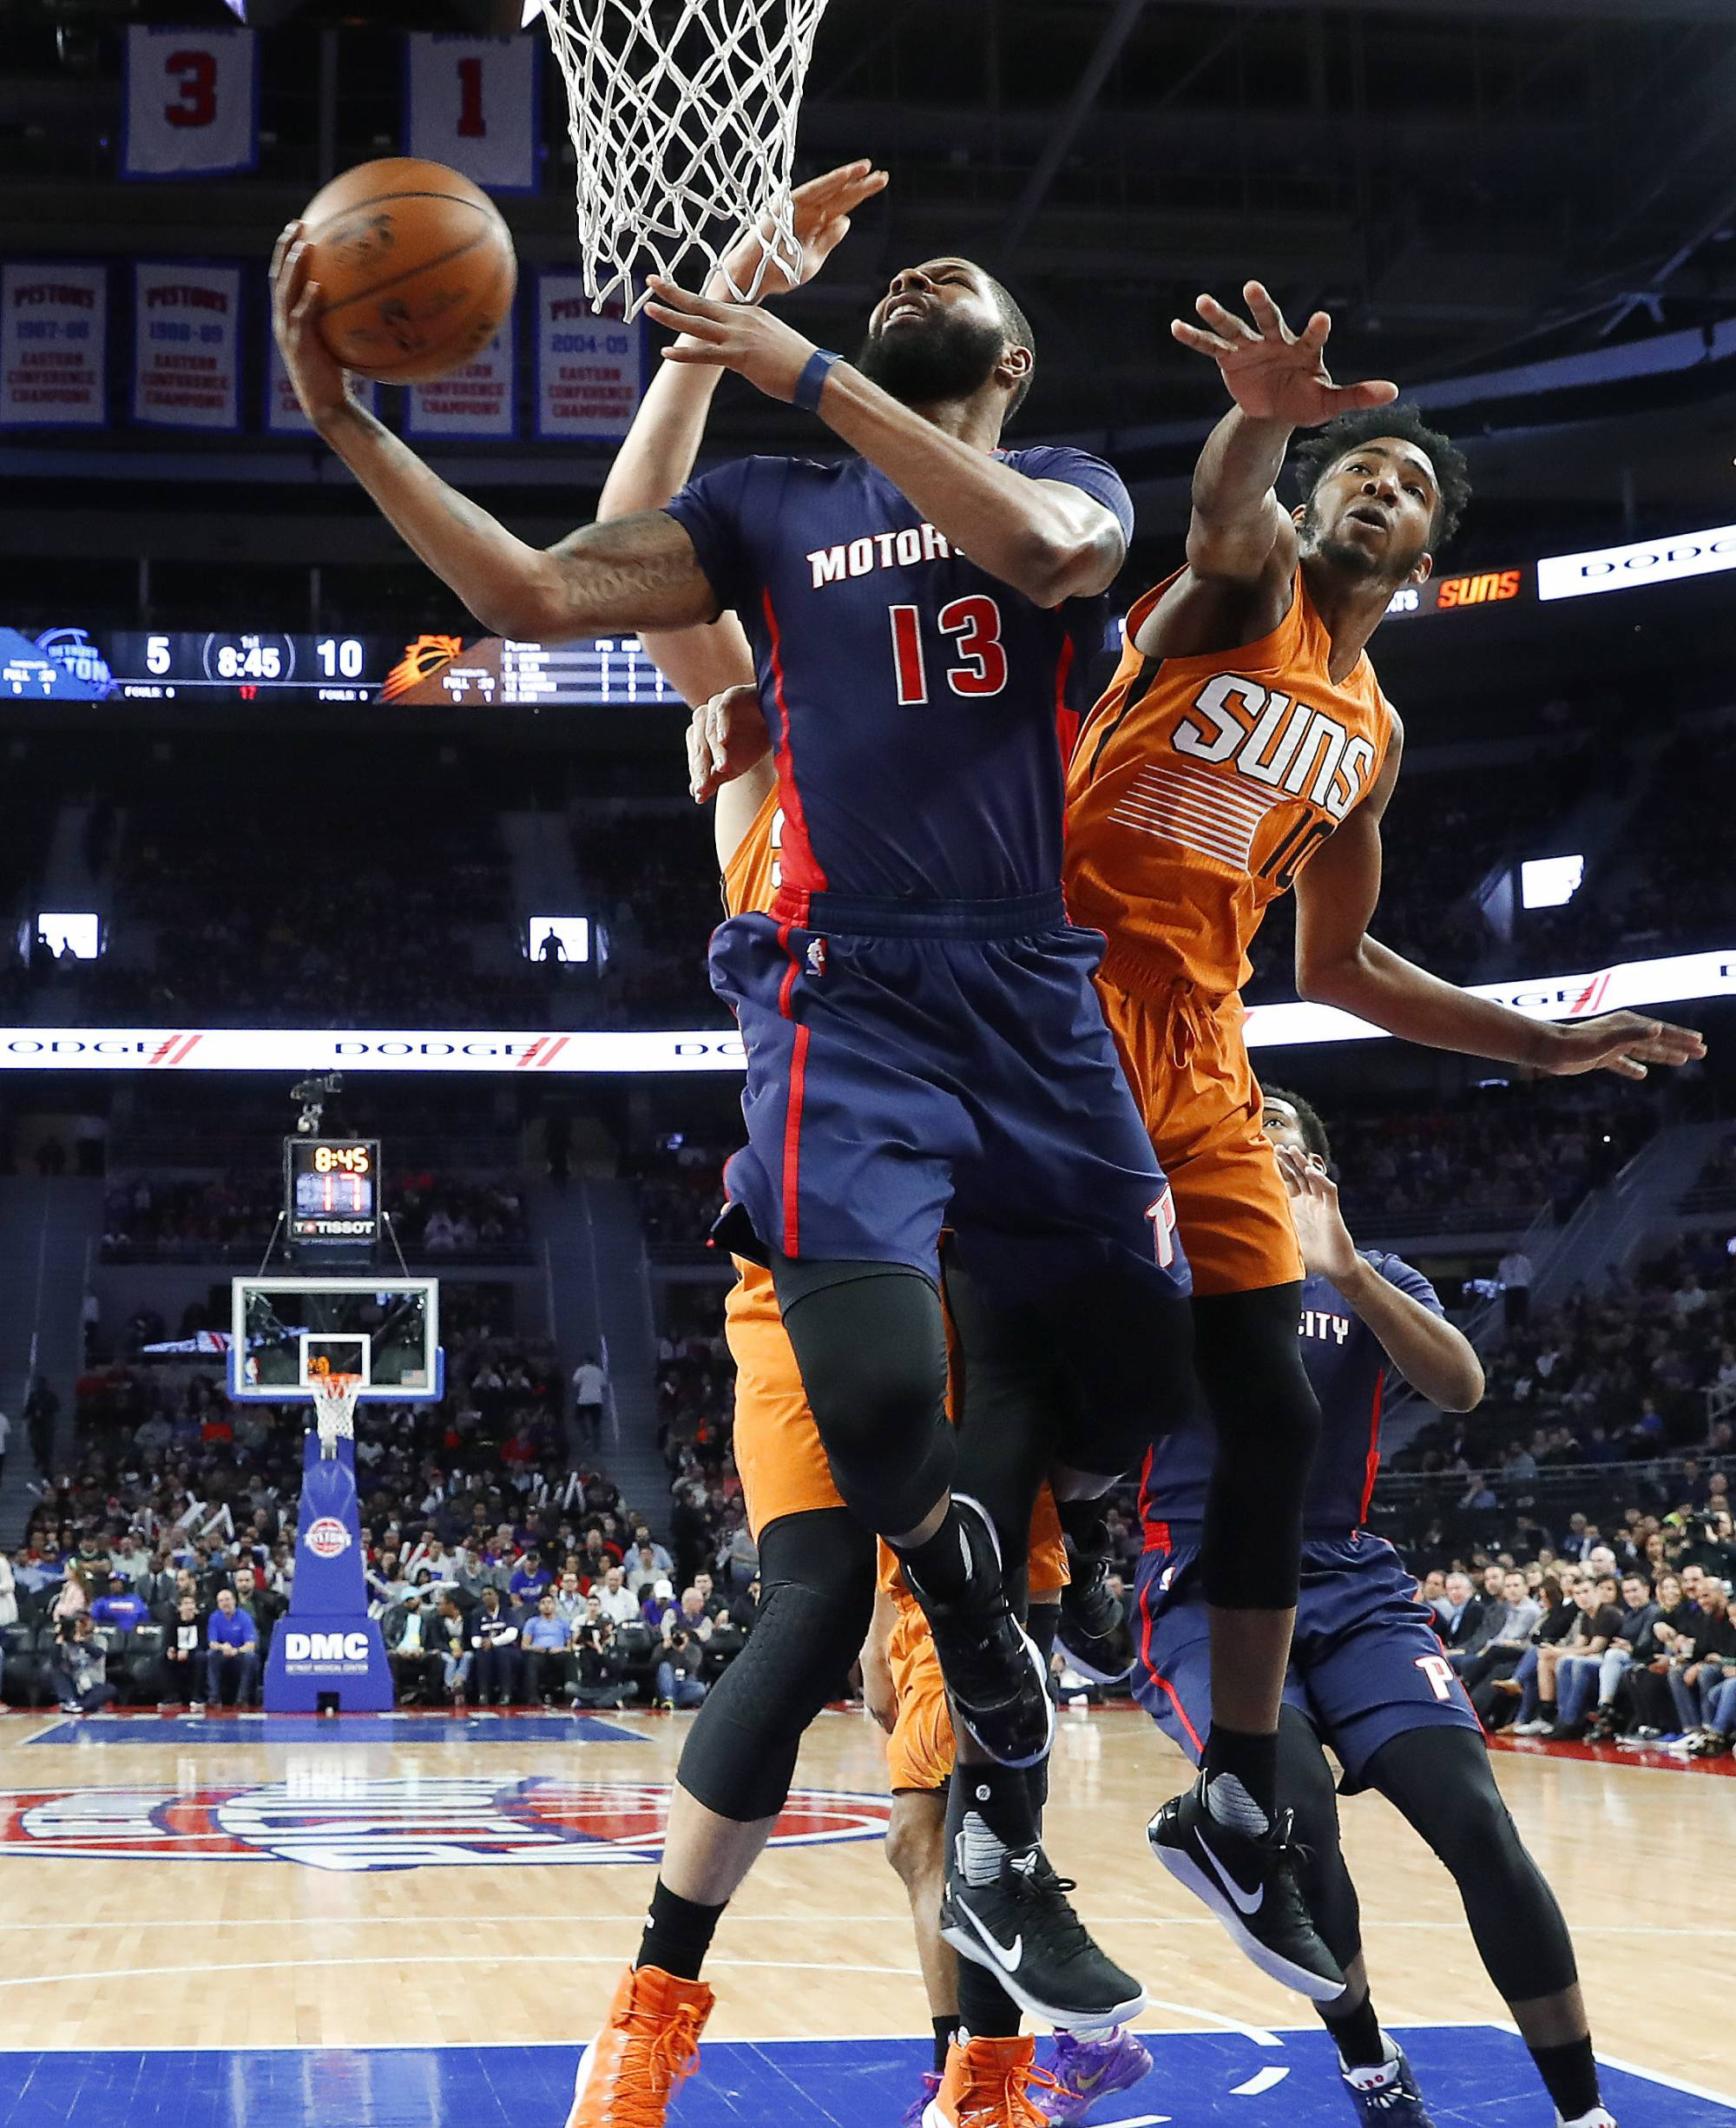 3ad182f19 (AP) — Stan Van Gundy wants his Detroit Pistons to play with energy in the  middle of a playoff race. The problem is that sometimes urgency leads to ...